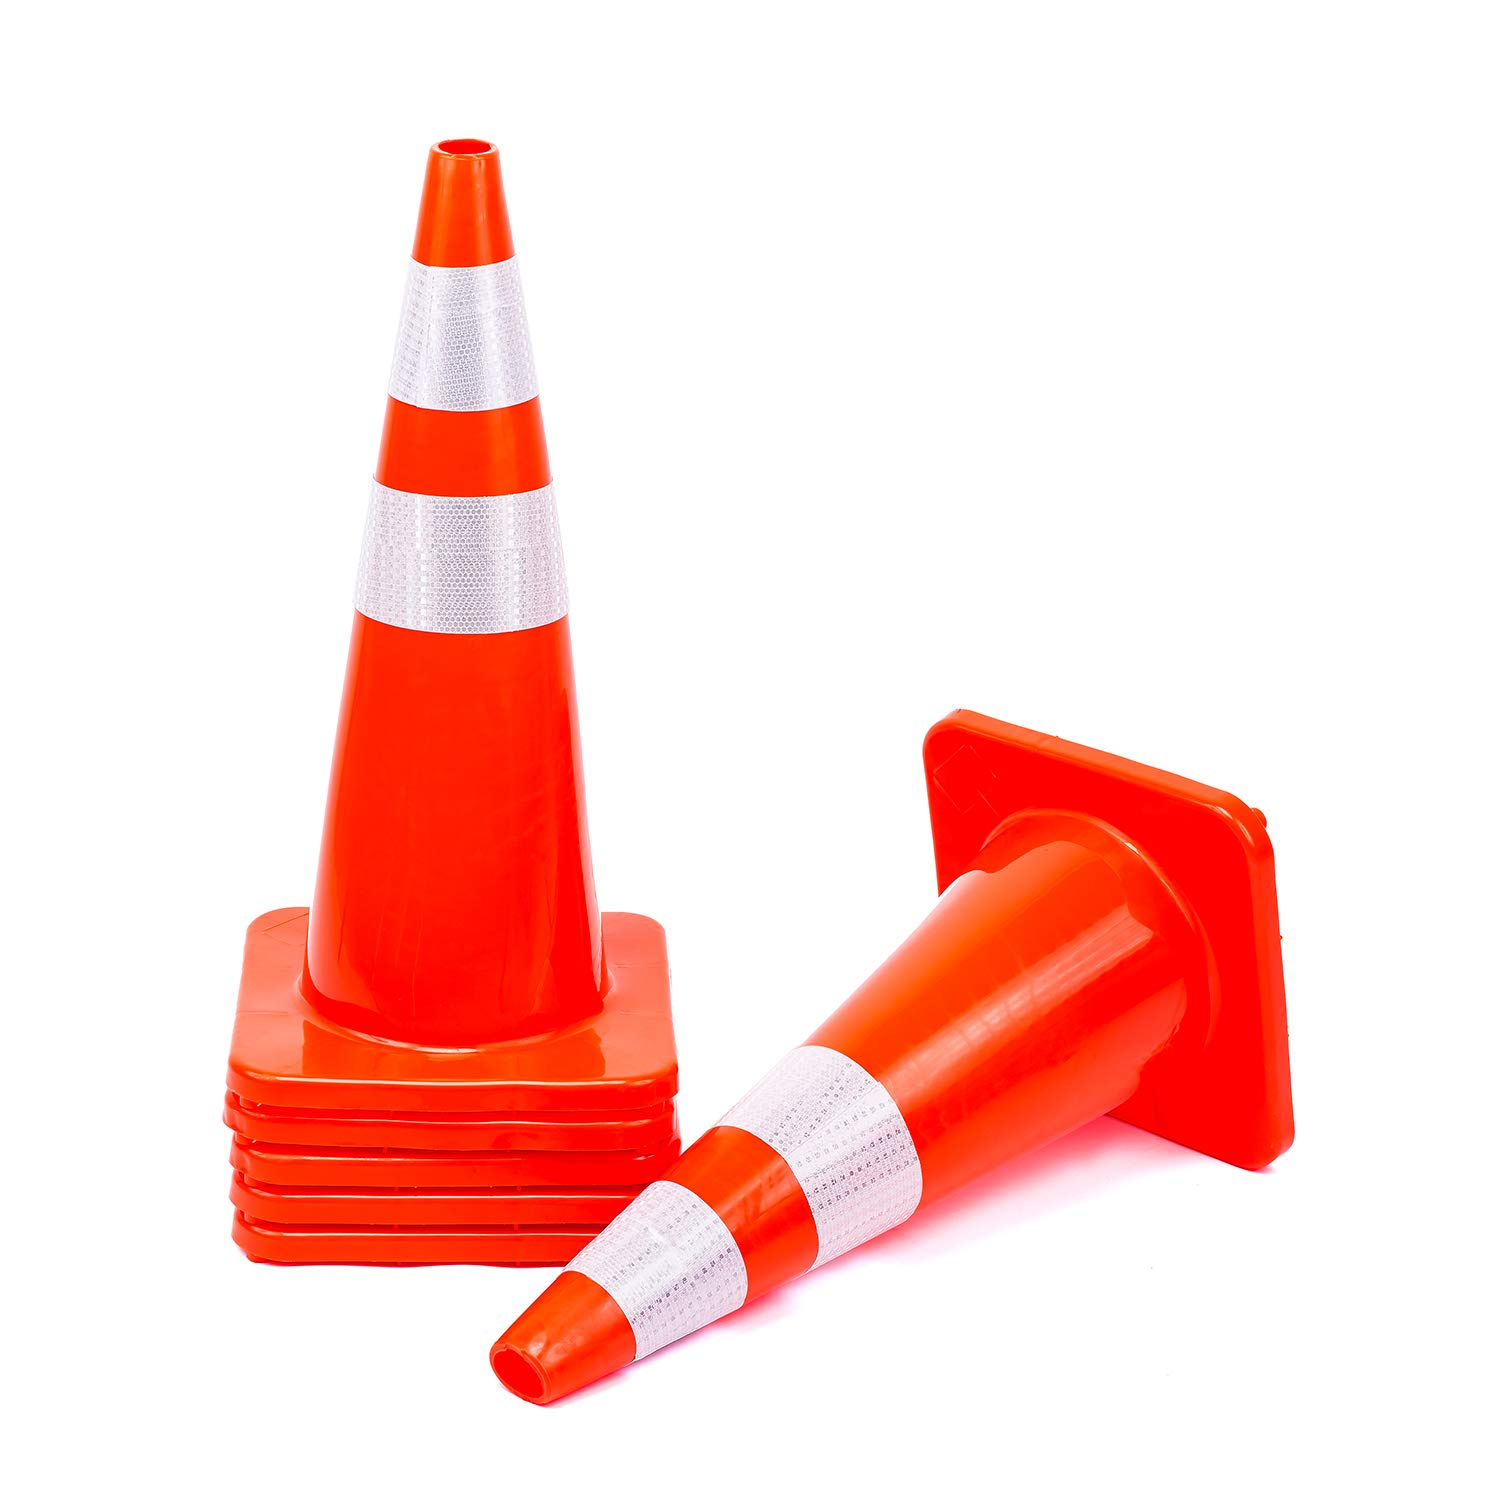 6 Cones 28'' Orange Traffic Safety Cone with Reflective Collar Road Packing PVC Plastic(Set of 6) by DOKIO